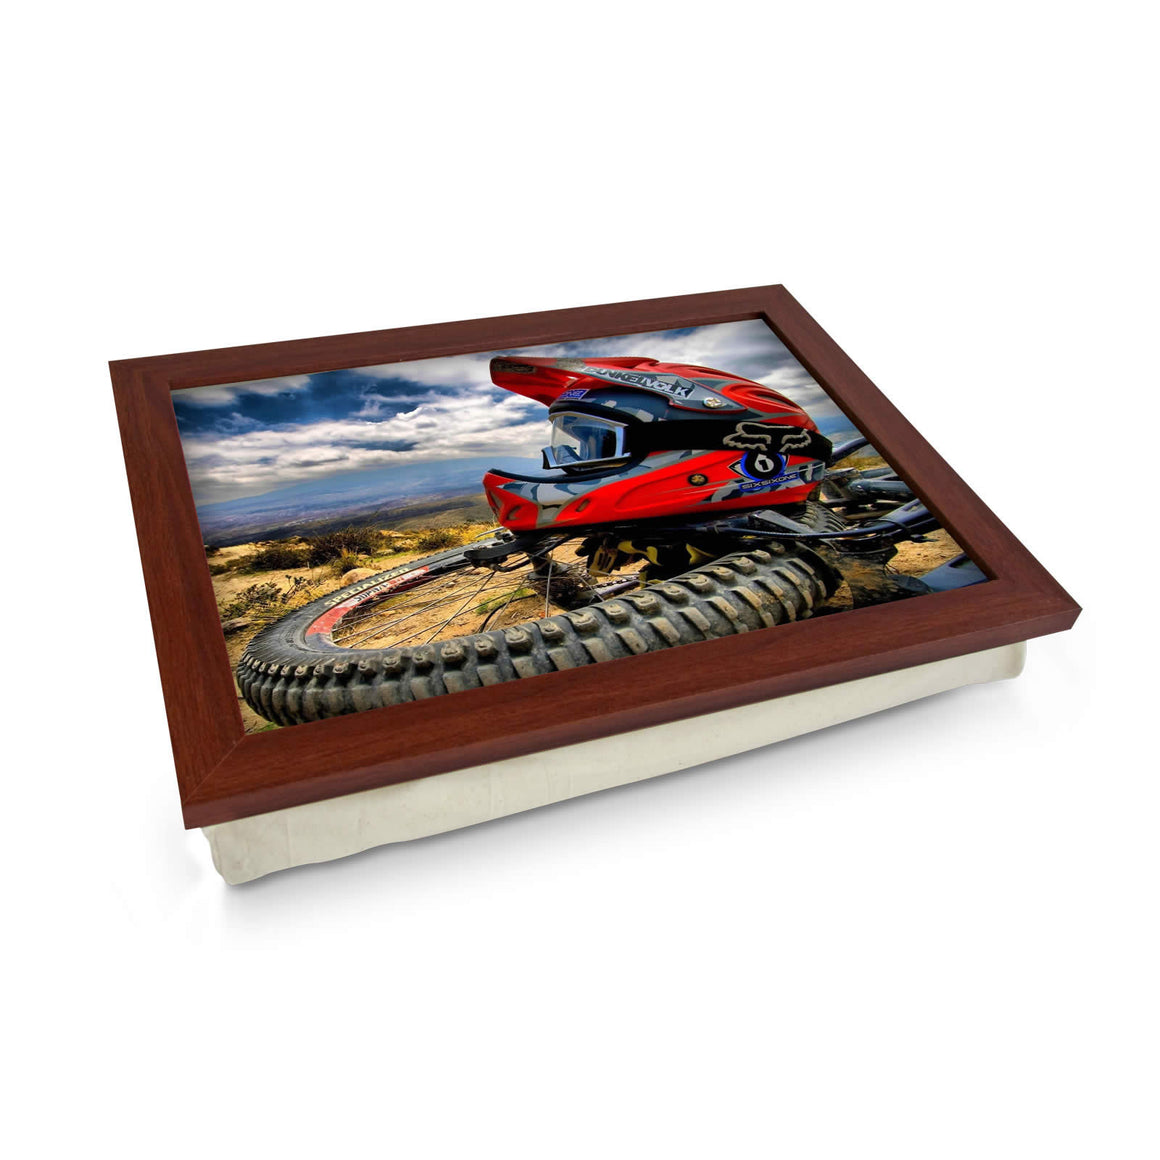 Motorcross cushioned lap tray